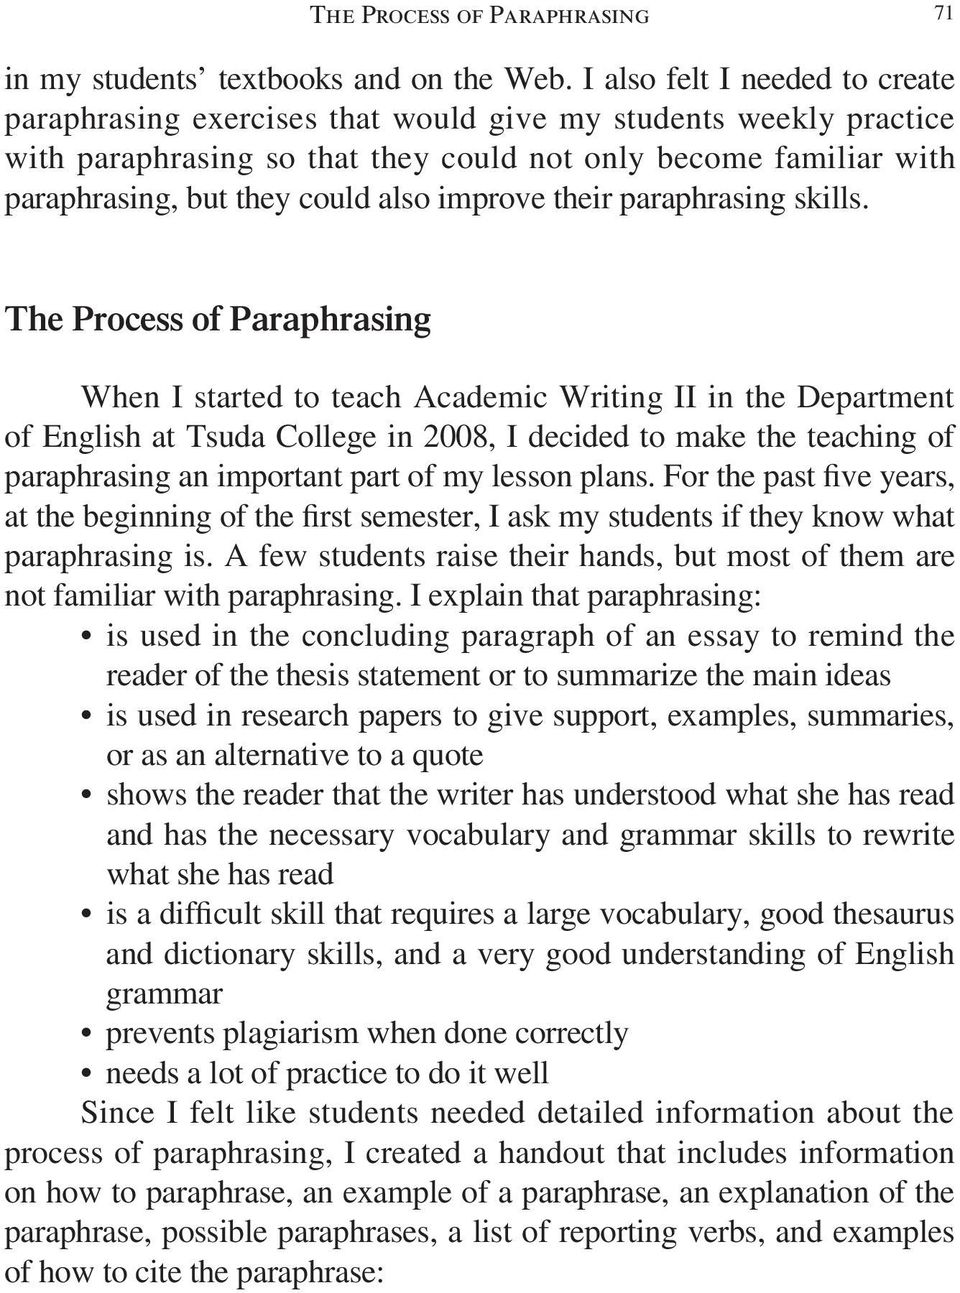 Exercises of paraphrasing in english